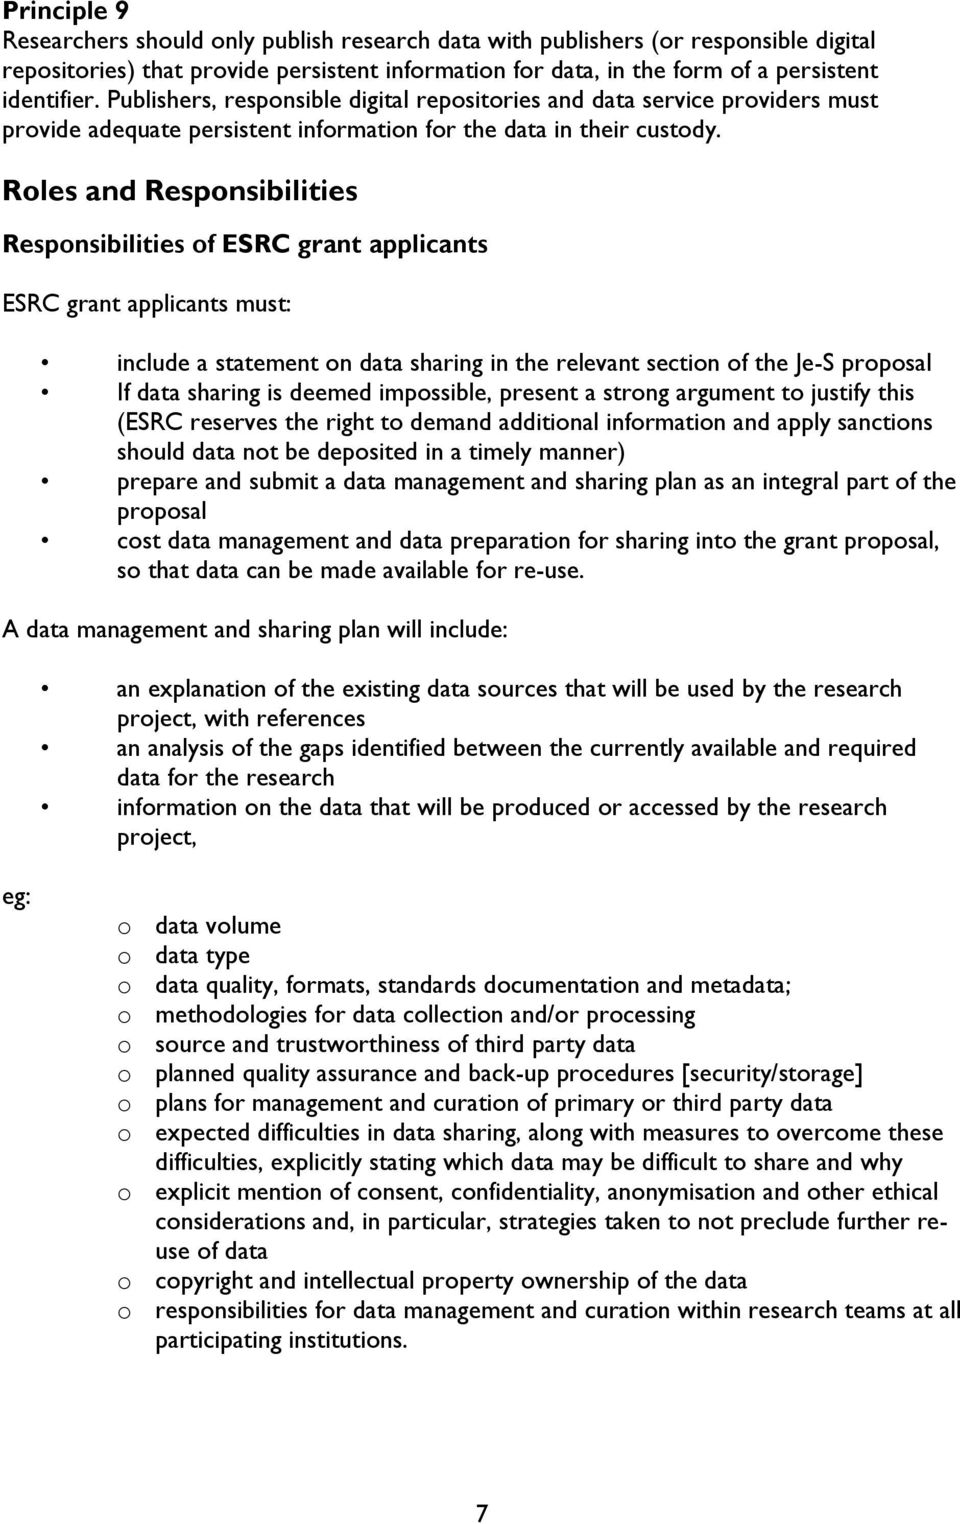 Roles and Responsibilities Responsibilities of ESRC grant applicants ESRC grant applicants must: include a statement on data sharing in the relevant section of the Je-S proposal If data sharing is